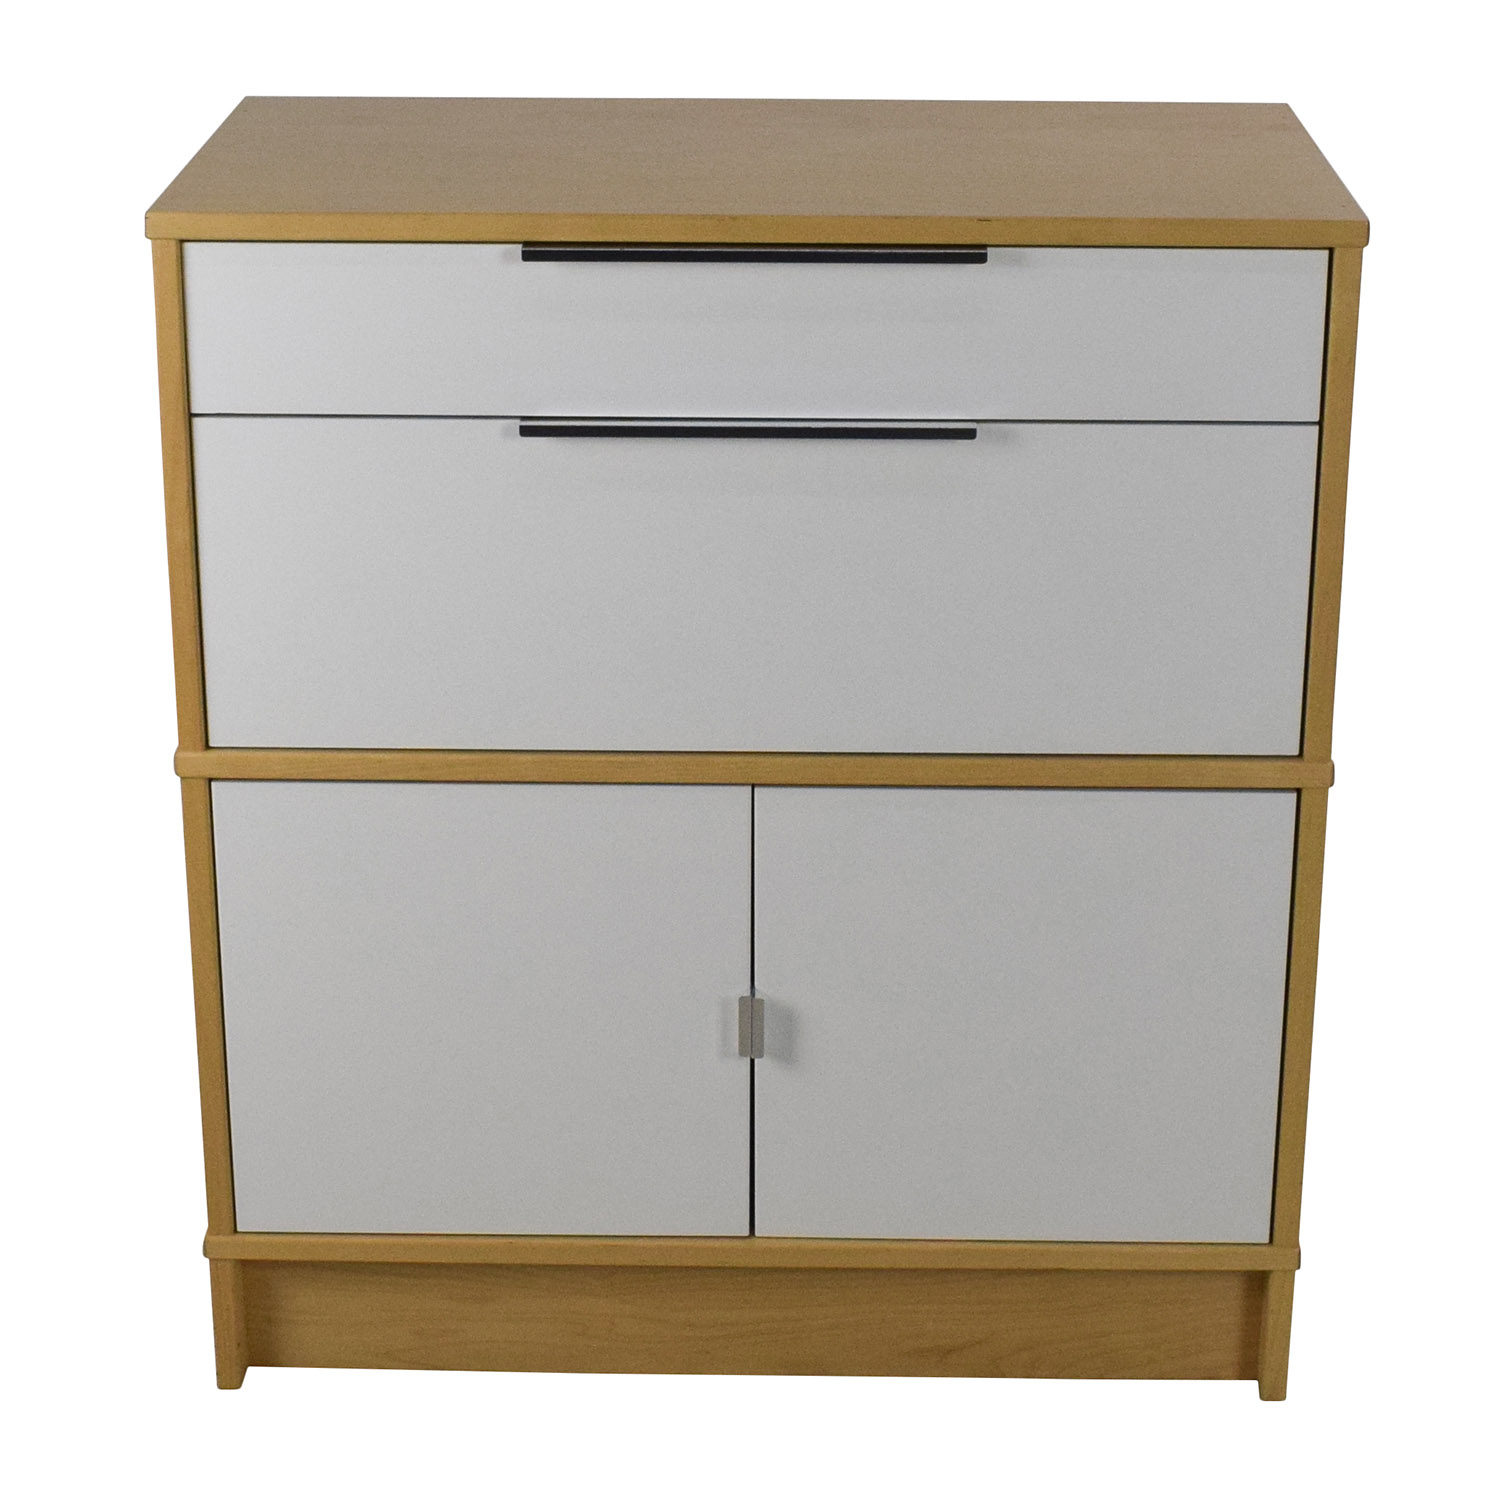 IKEA IKEA Storage Cabinet for sale